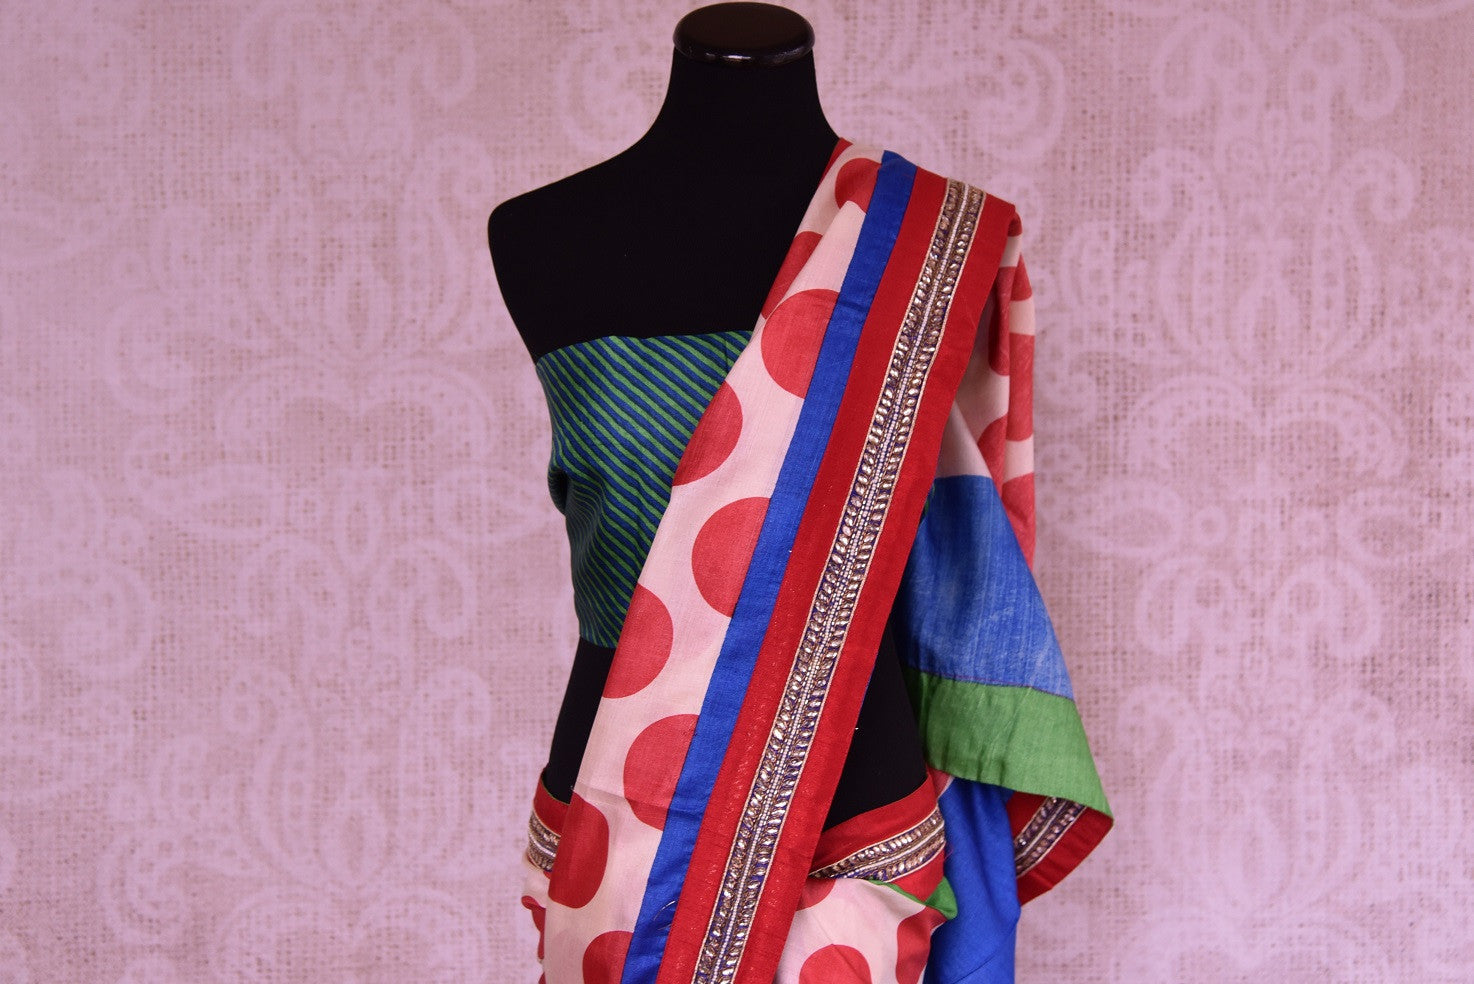 90C248 Looking for a unique party wear saree this season? Buy this multi-colored, printd silk saree with polka dots and a traditional kundan border trim today! This one is sure to keep your style game on top.